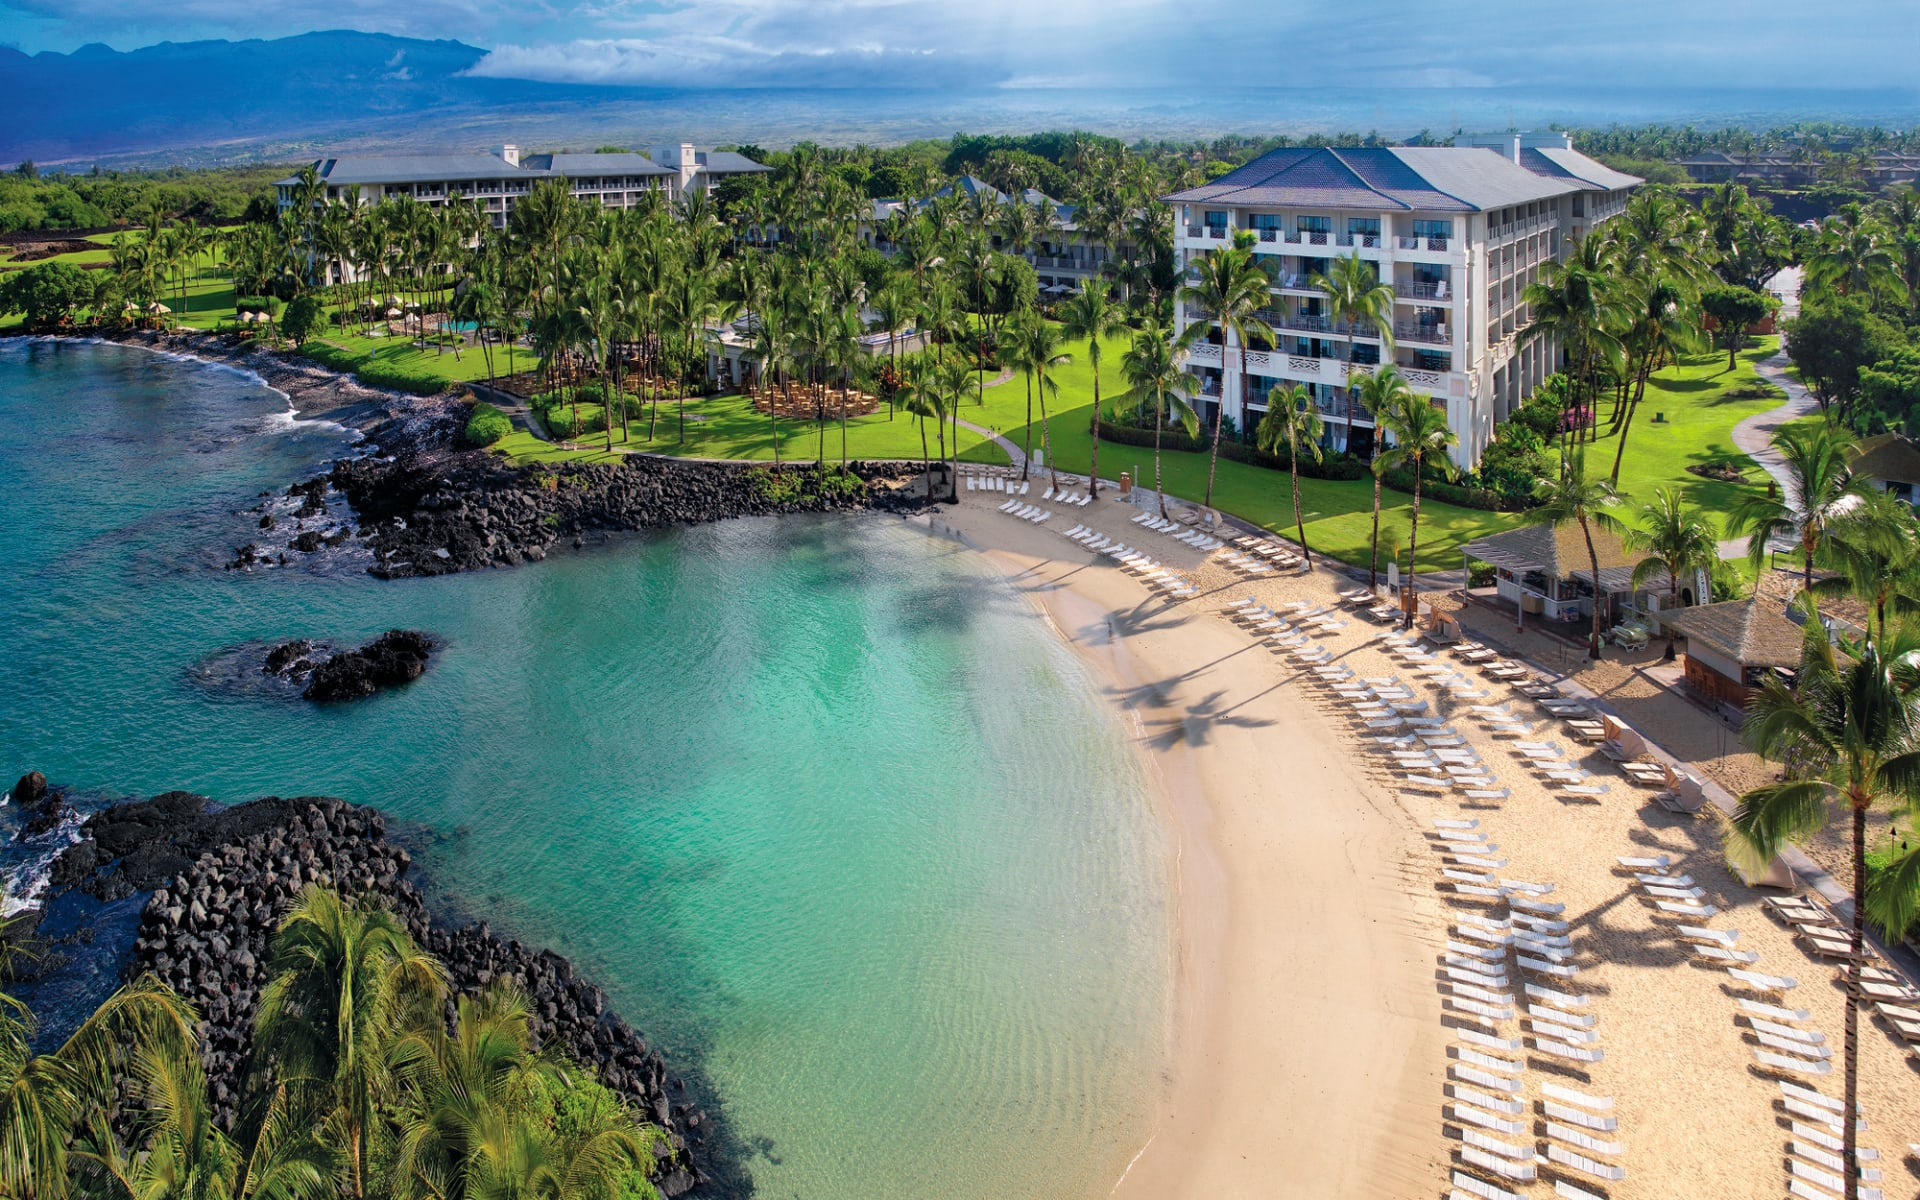 Fairmont Orchid in Waikoloa: natur fairmont orchid hotel strand meer